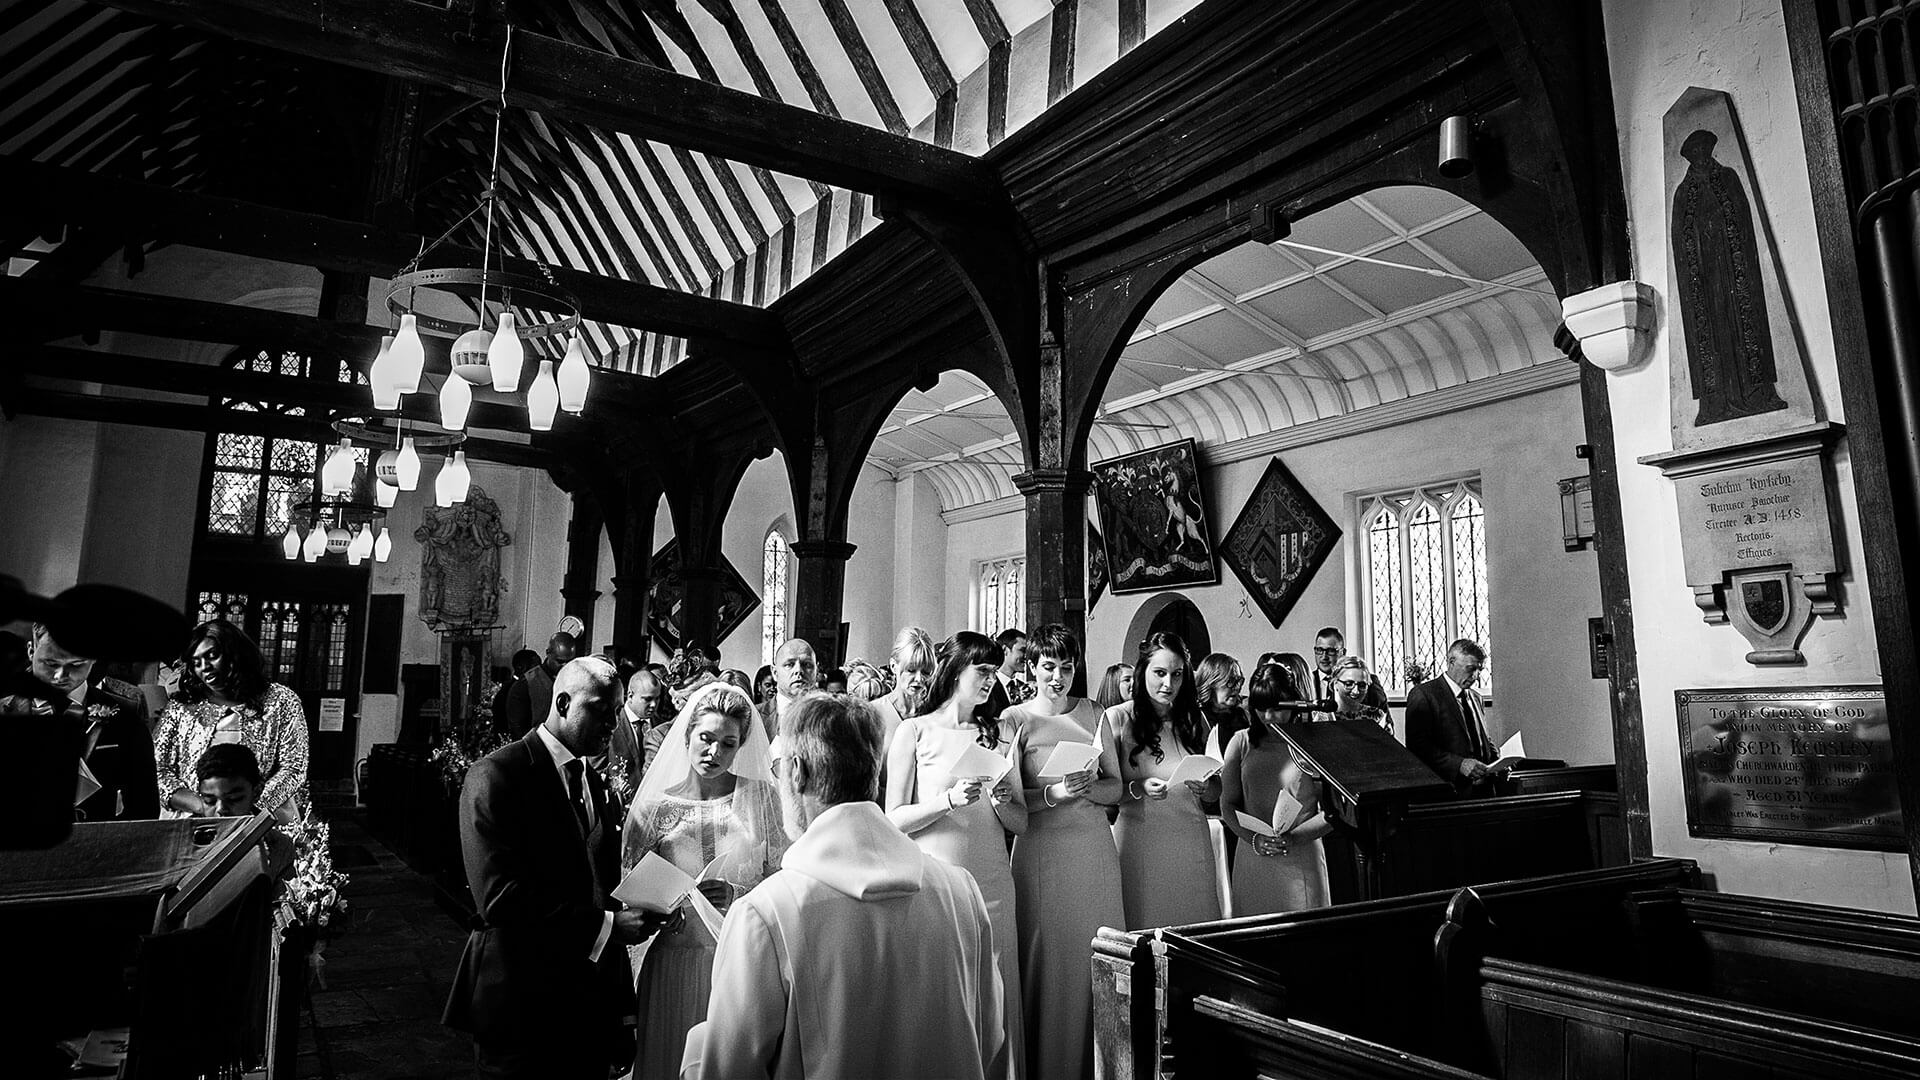 A wedding party sings hymns during their church wedding - wedding barns Essex